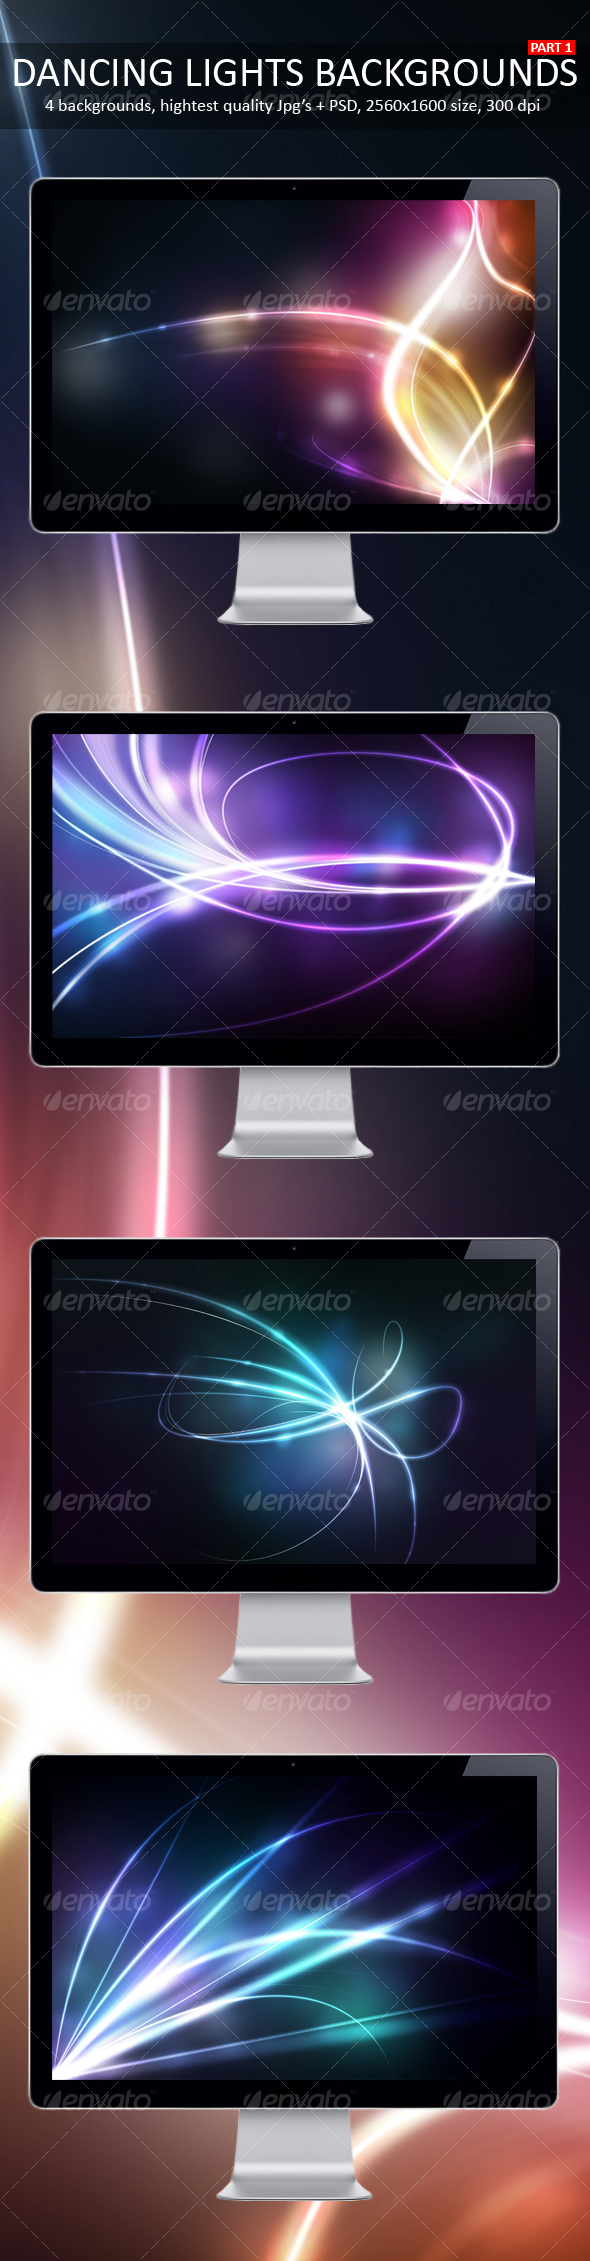 Dancing Lights Backgrounds Part 1 - Backgrounds Graphics